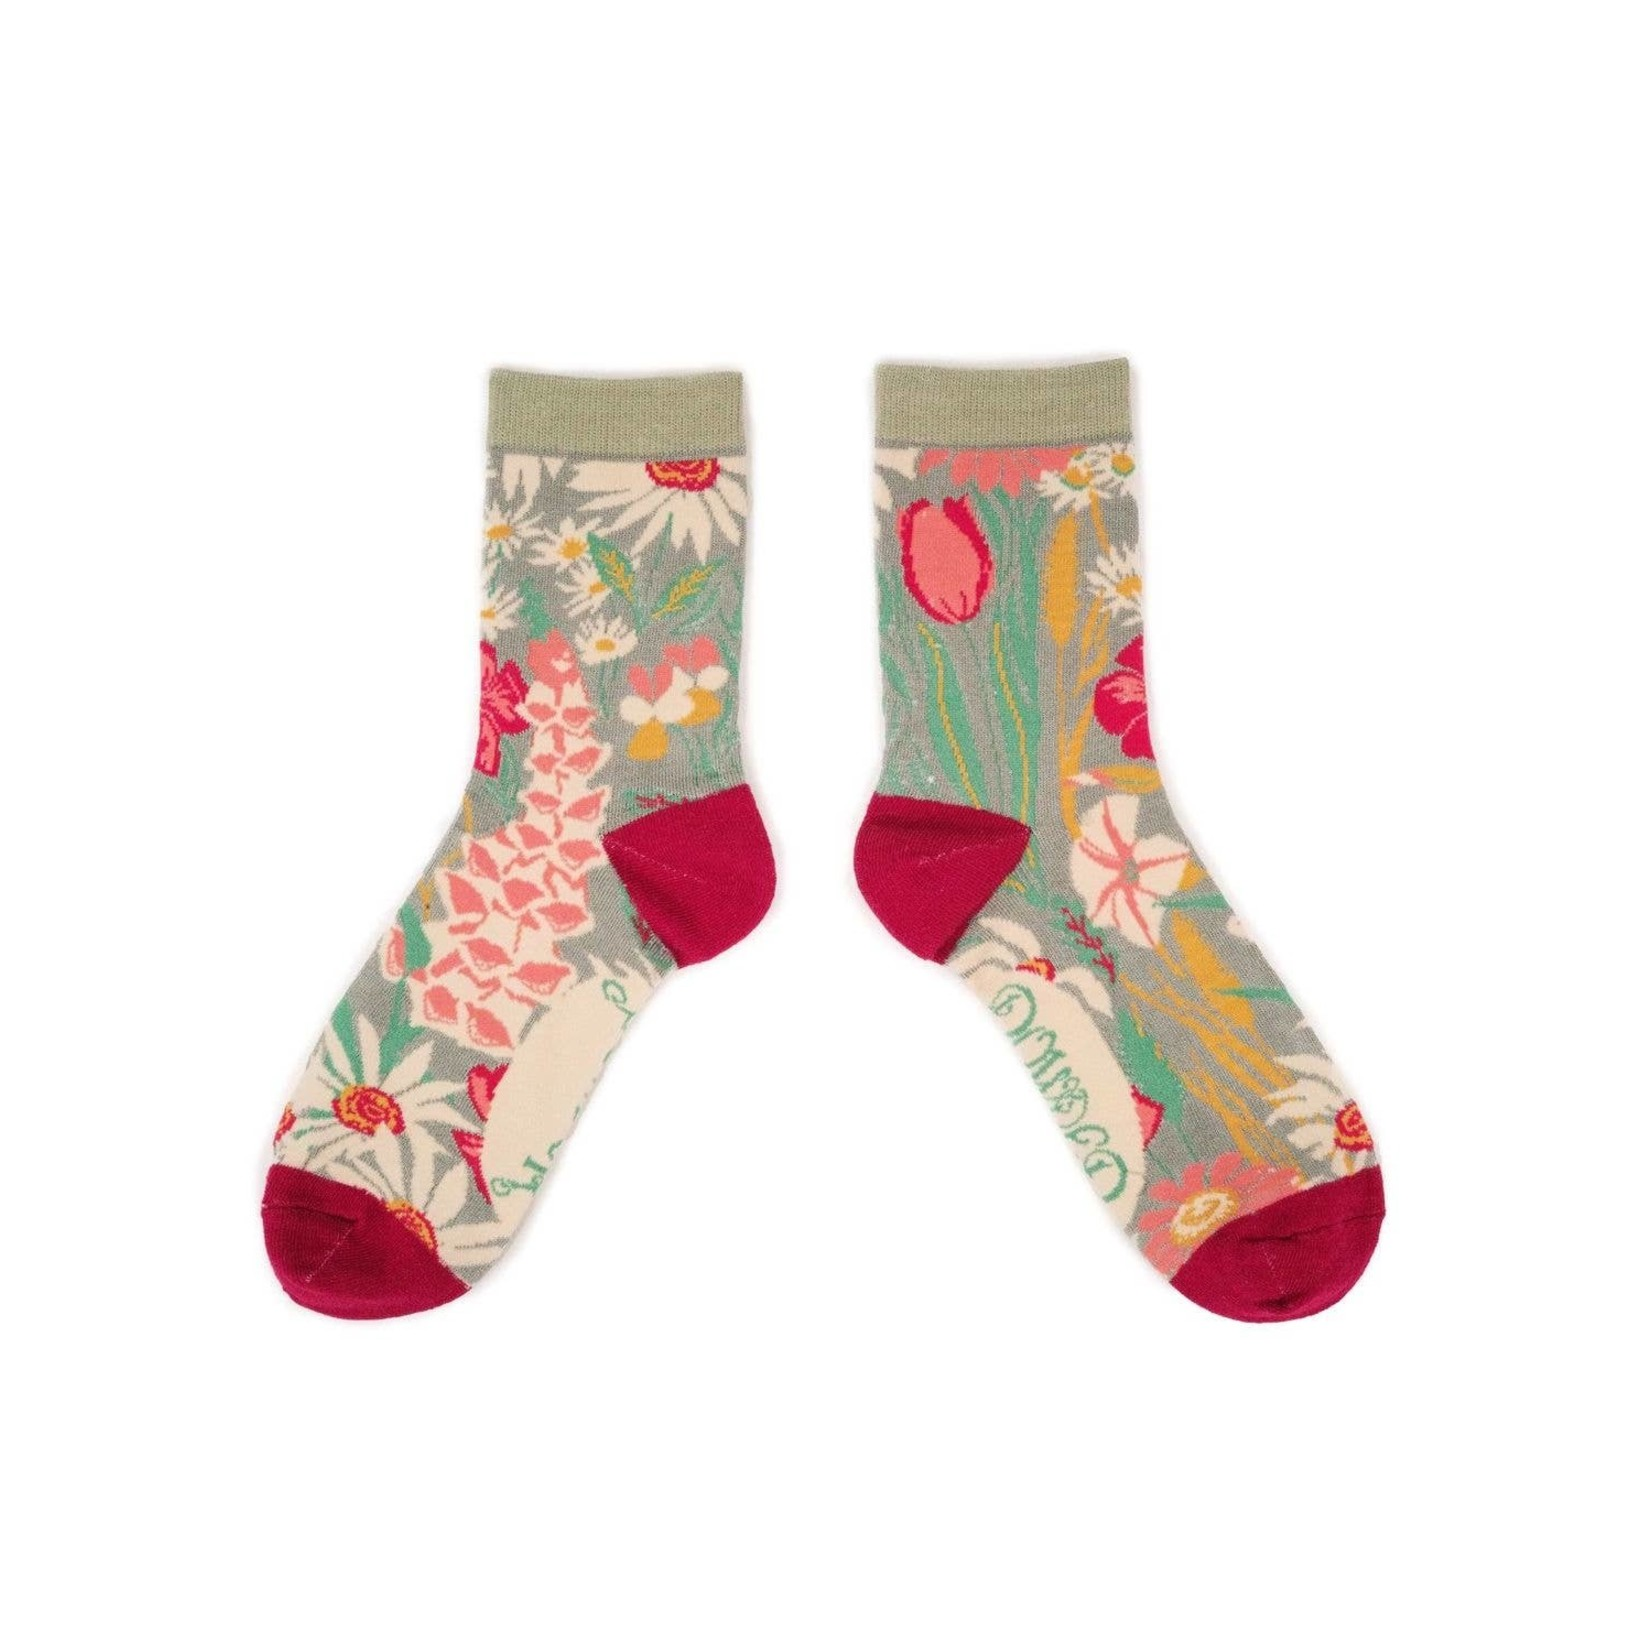 Powder Country Garden Ankle Sock in Mint